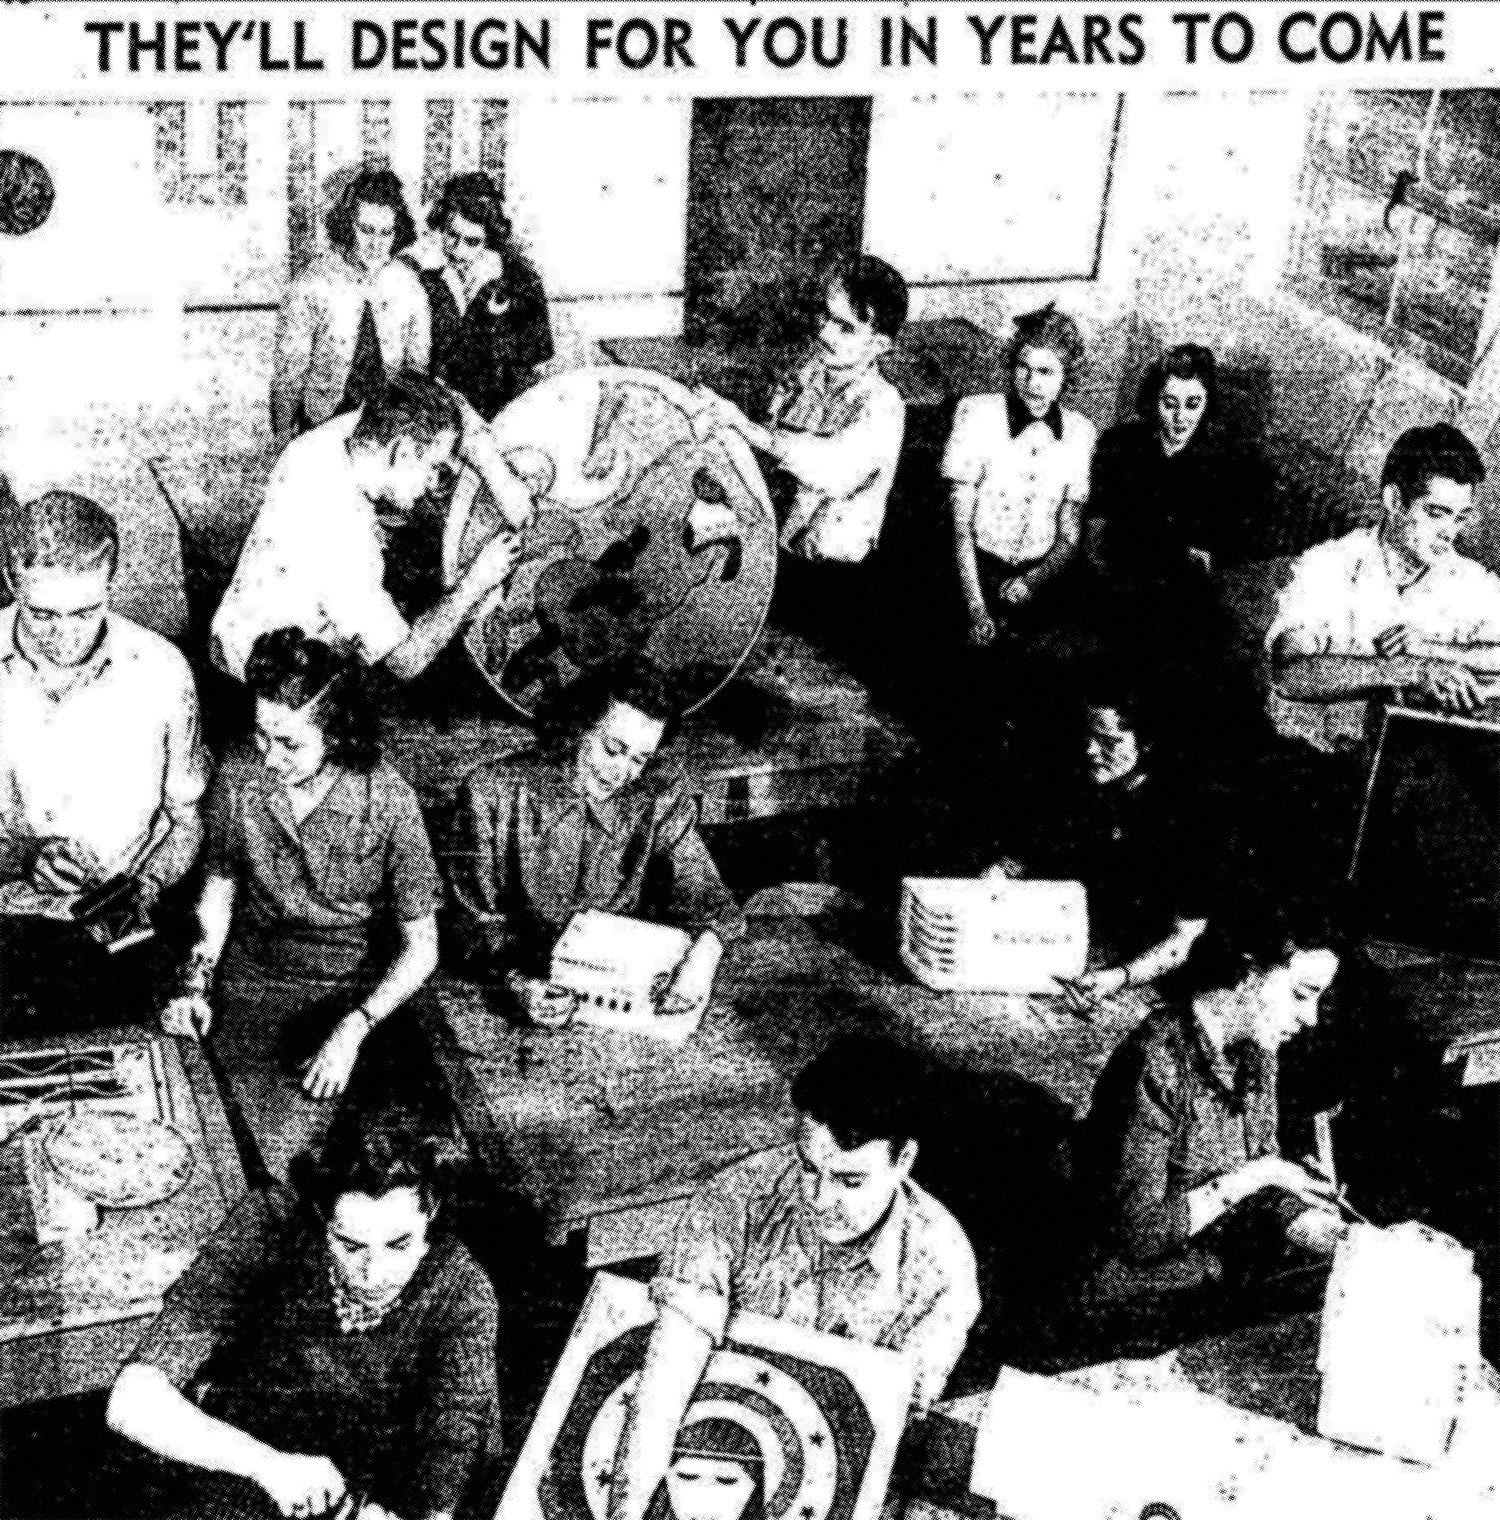 "USC Industrial Design Students, December 1939. ""They'll Design for You in Years to Come."" Source: Los Angeles Times, Dec. 24, 1939."